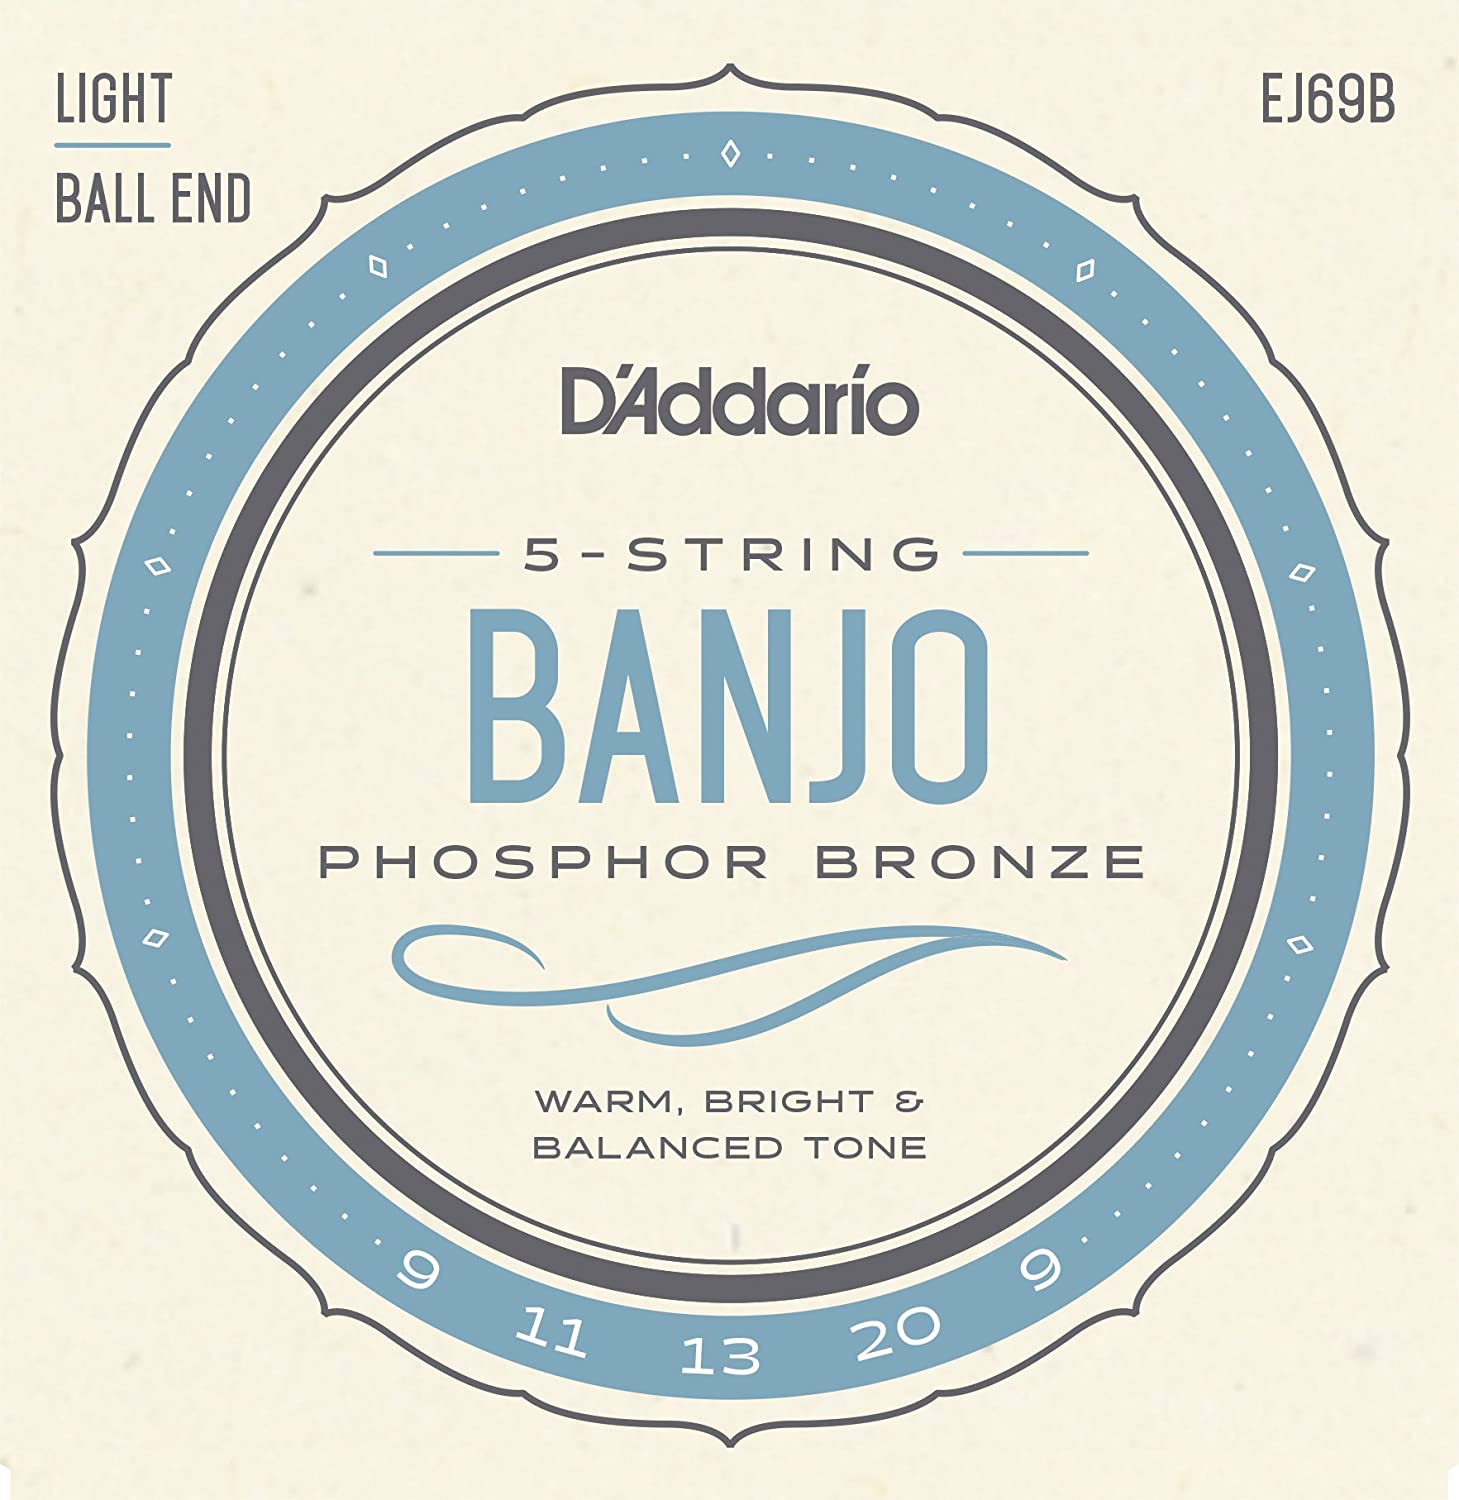 D'Addario EJ69B Phosphor Bronze 5-String Ball-End Banjo Strings, Light, 9-20 D'Addario